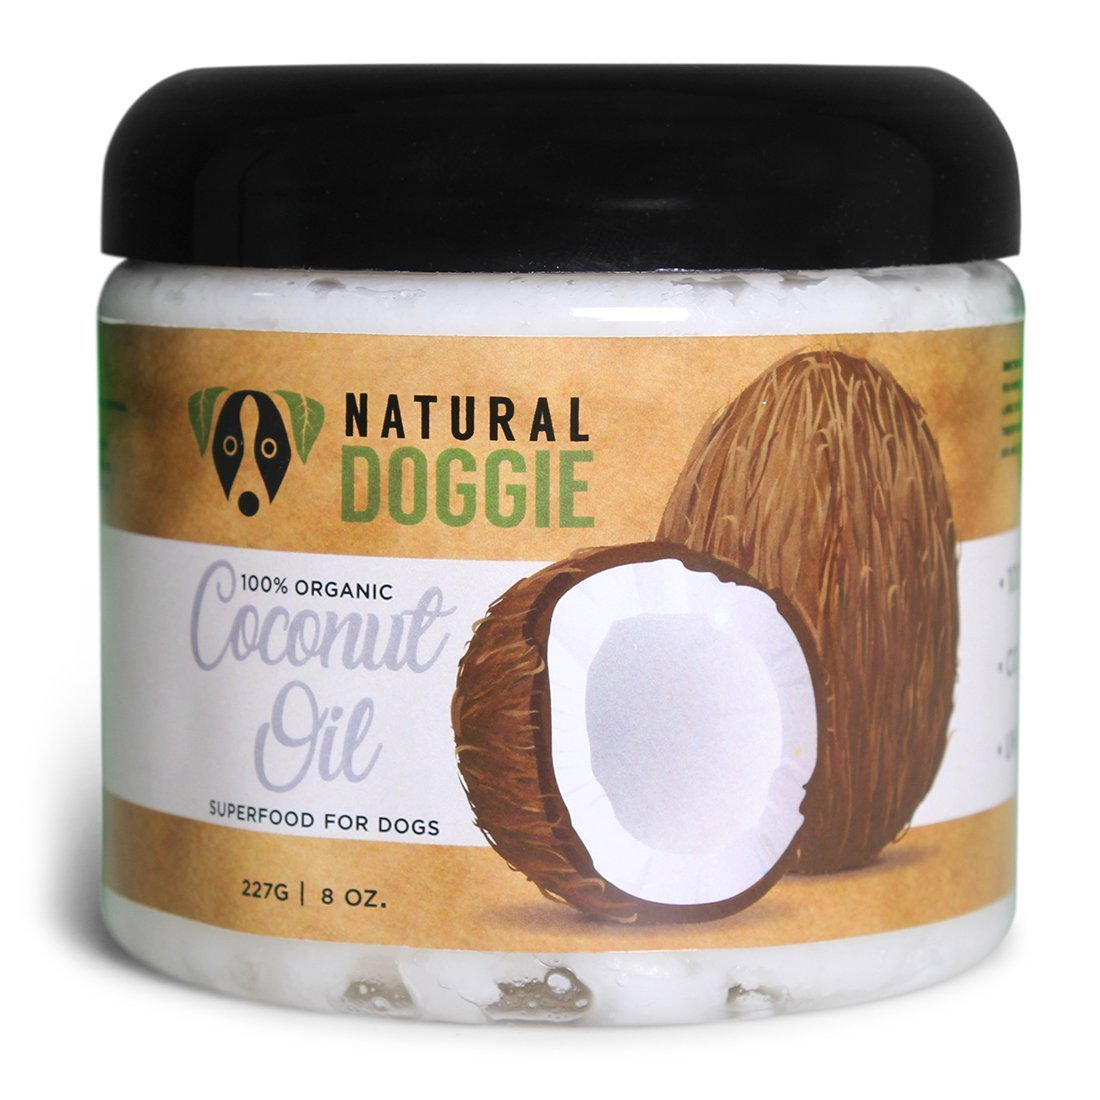 coconut oil for dogs, Can I give my dog coconut oil